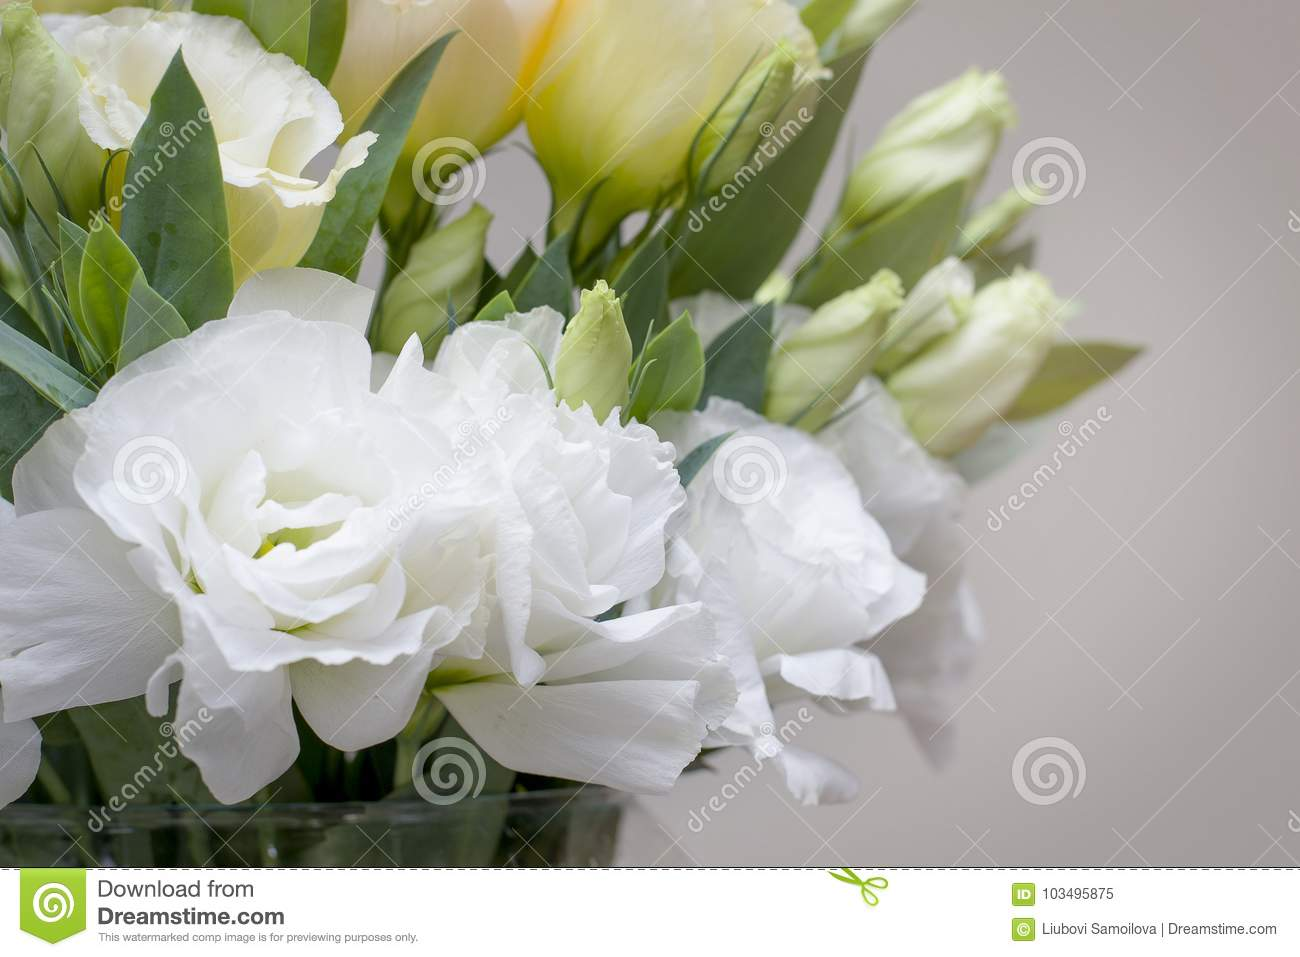 Beautiful White Lisianthus Flowers Look So Much Alike Roses Stock